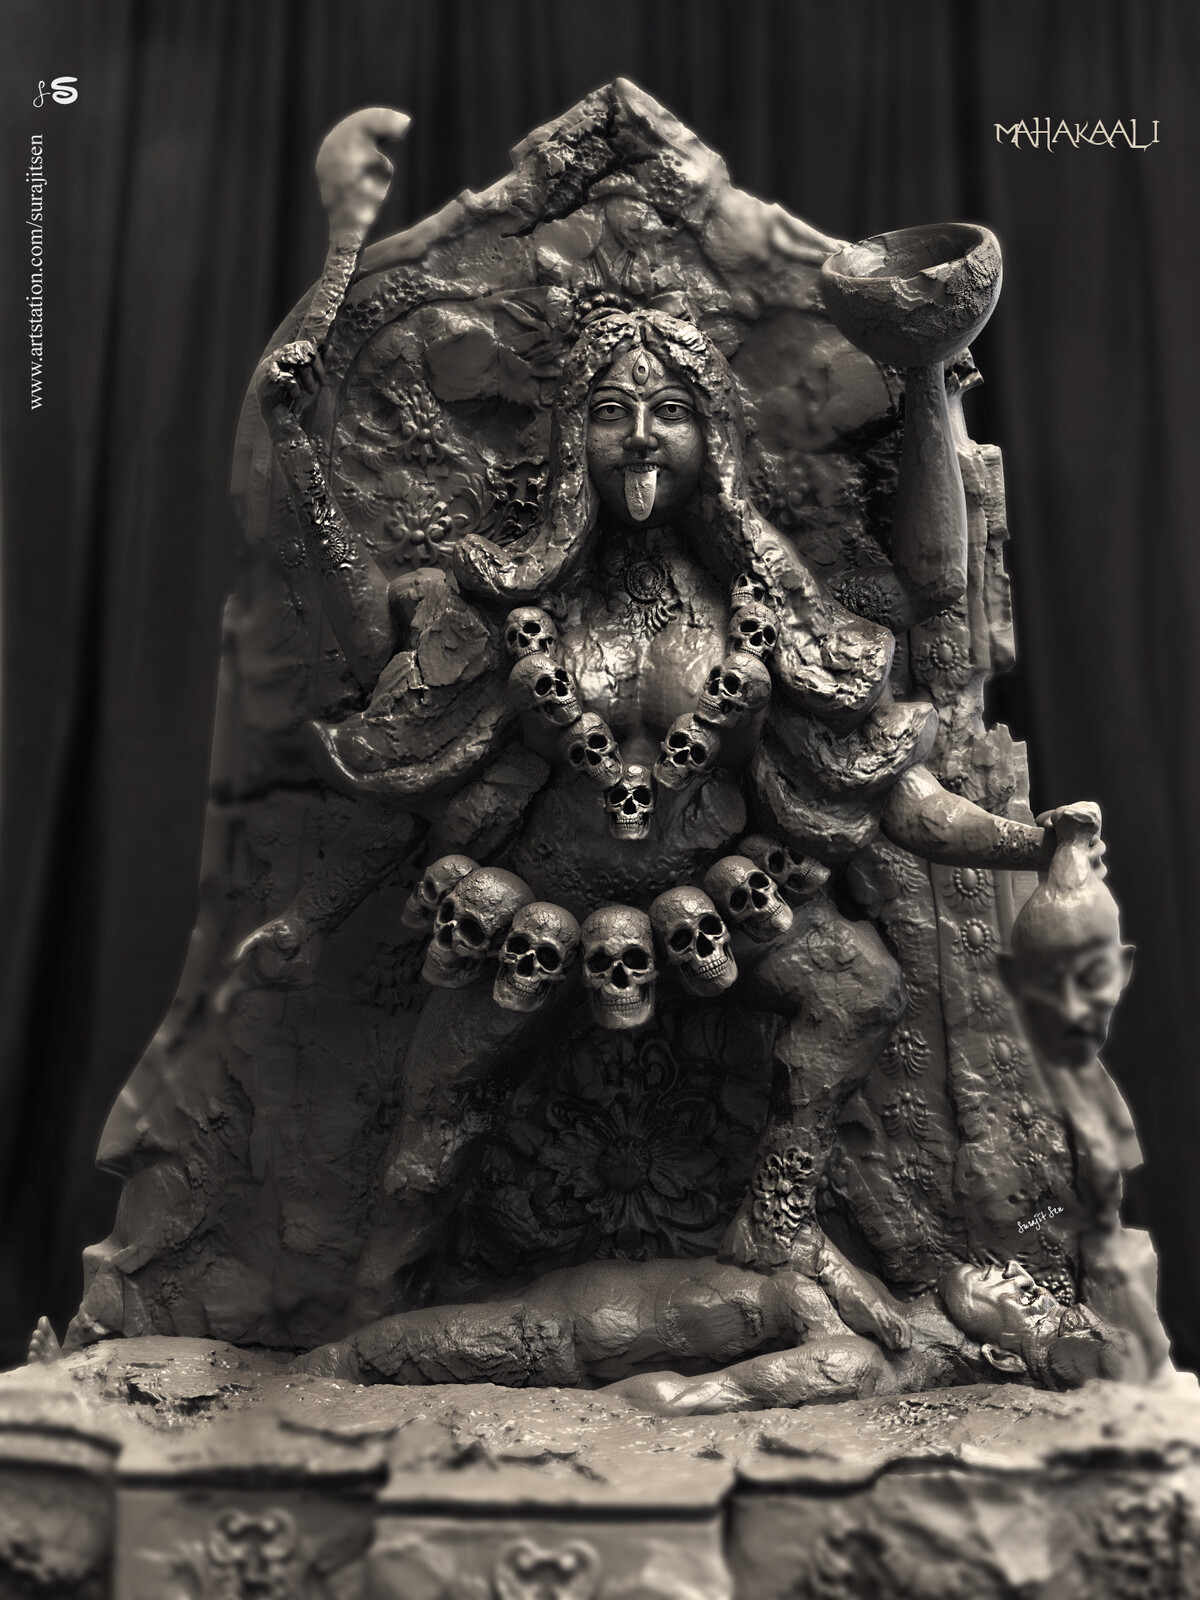 Updated version one of my Digital Sculpture -   Mahakaali Here I tried to create the form of Goddess Kali, inspired from the ancient Indian relics. I like the hidden art in damaged idols and try to sculpt it digitally.